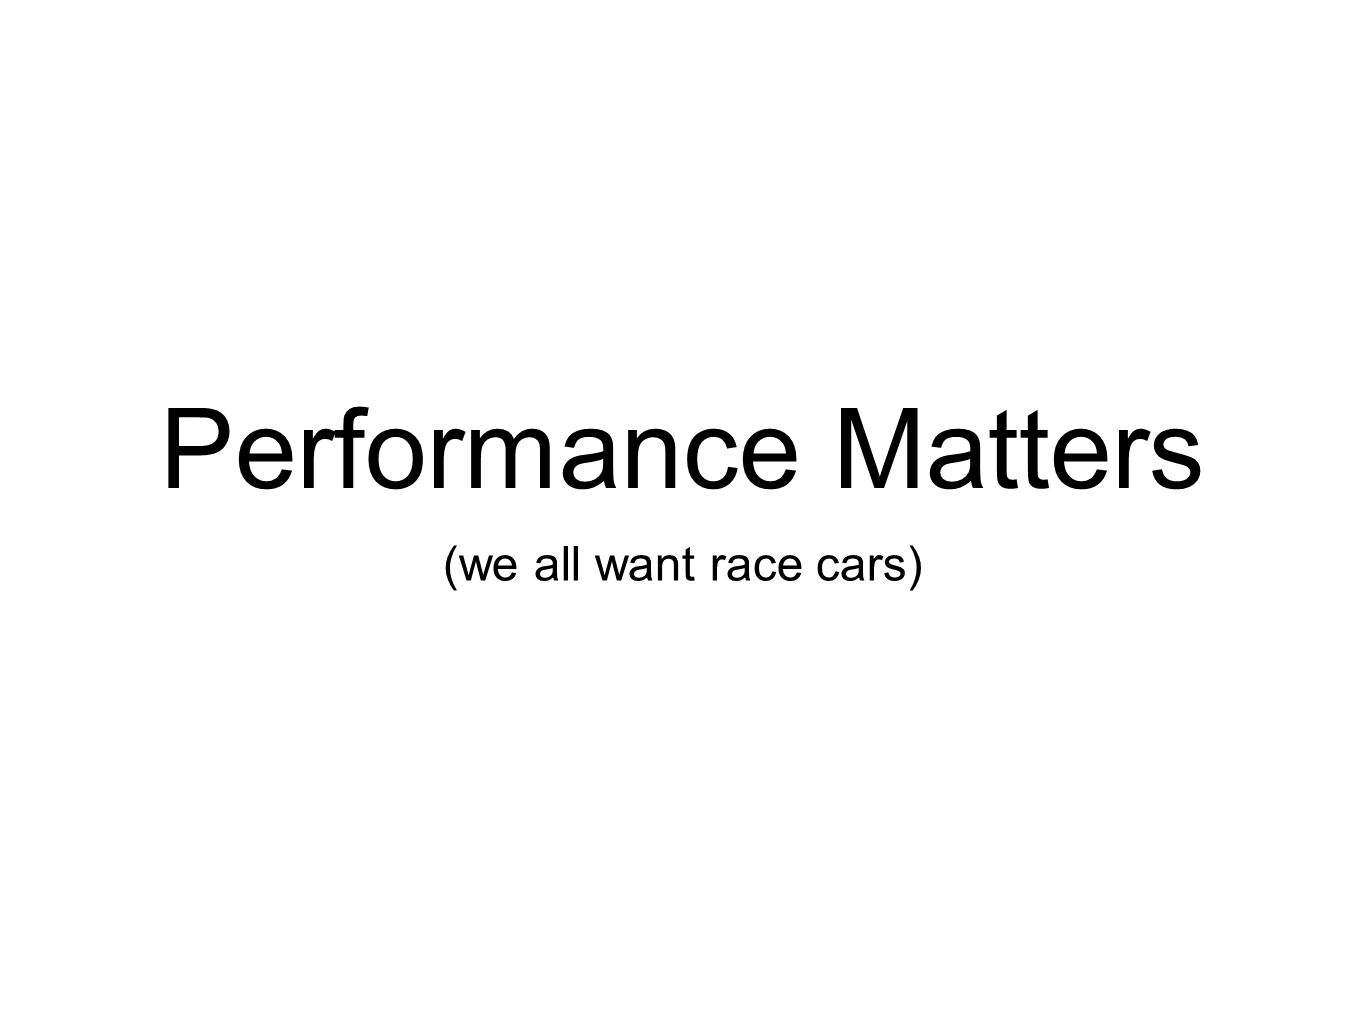 Performance Matters (we all want race cars)